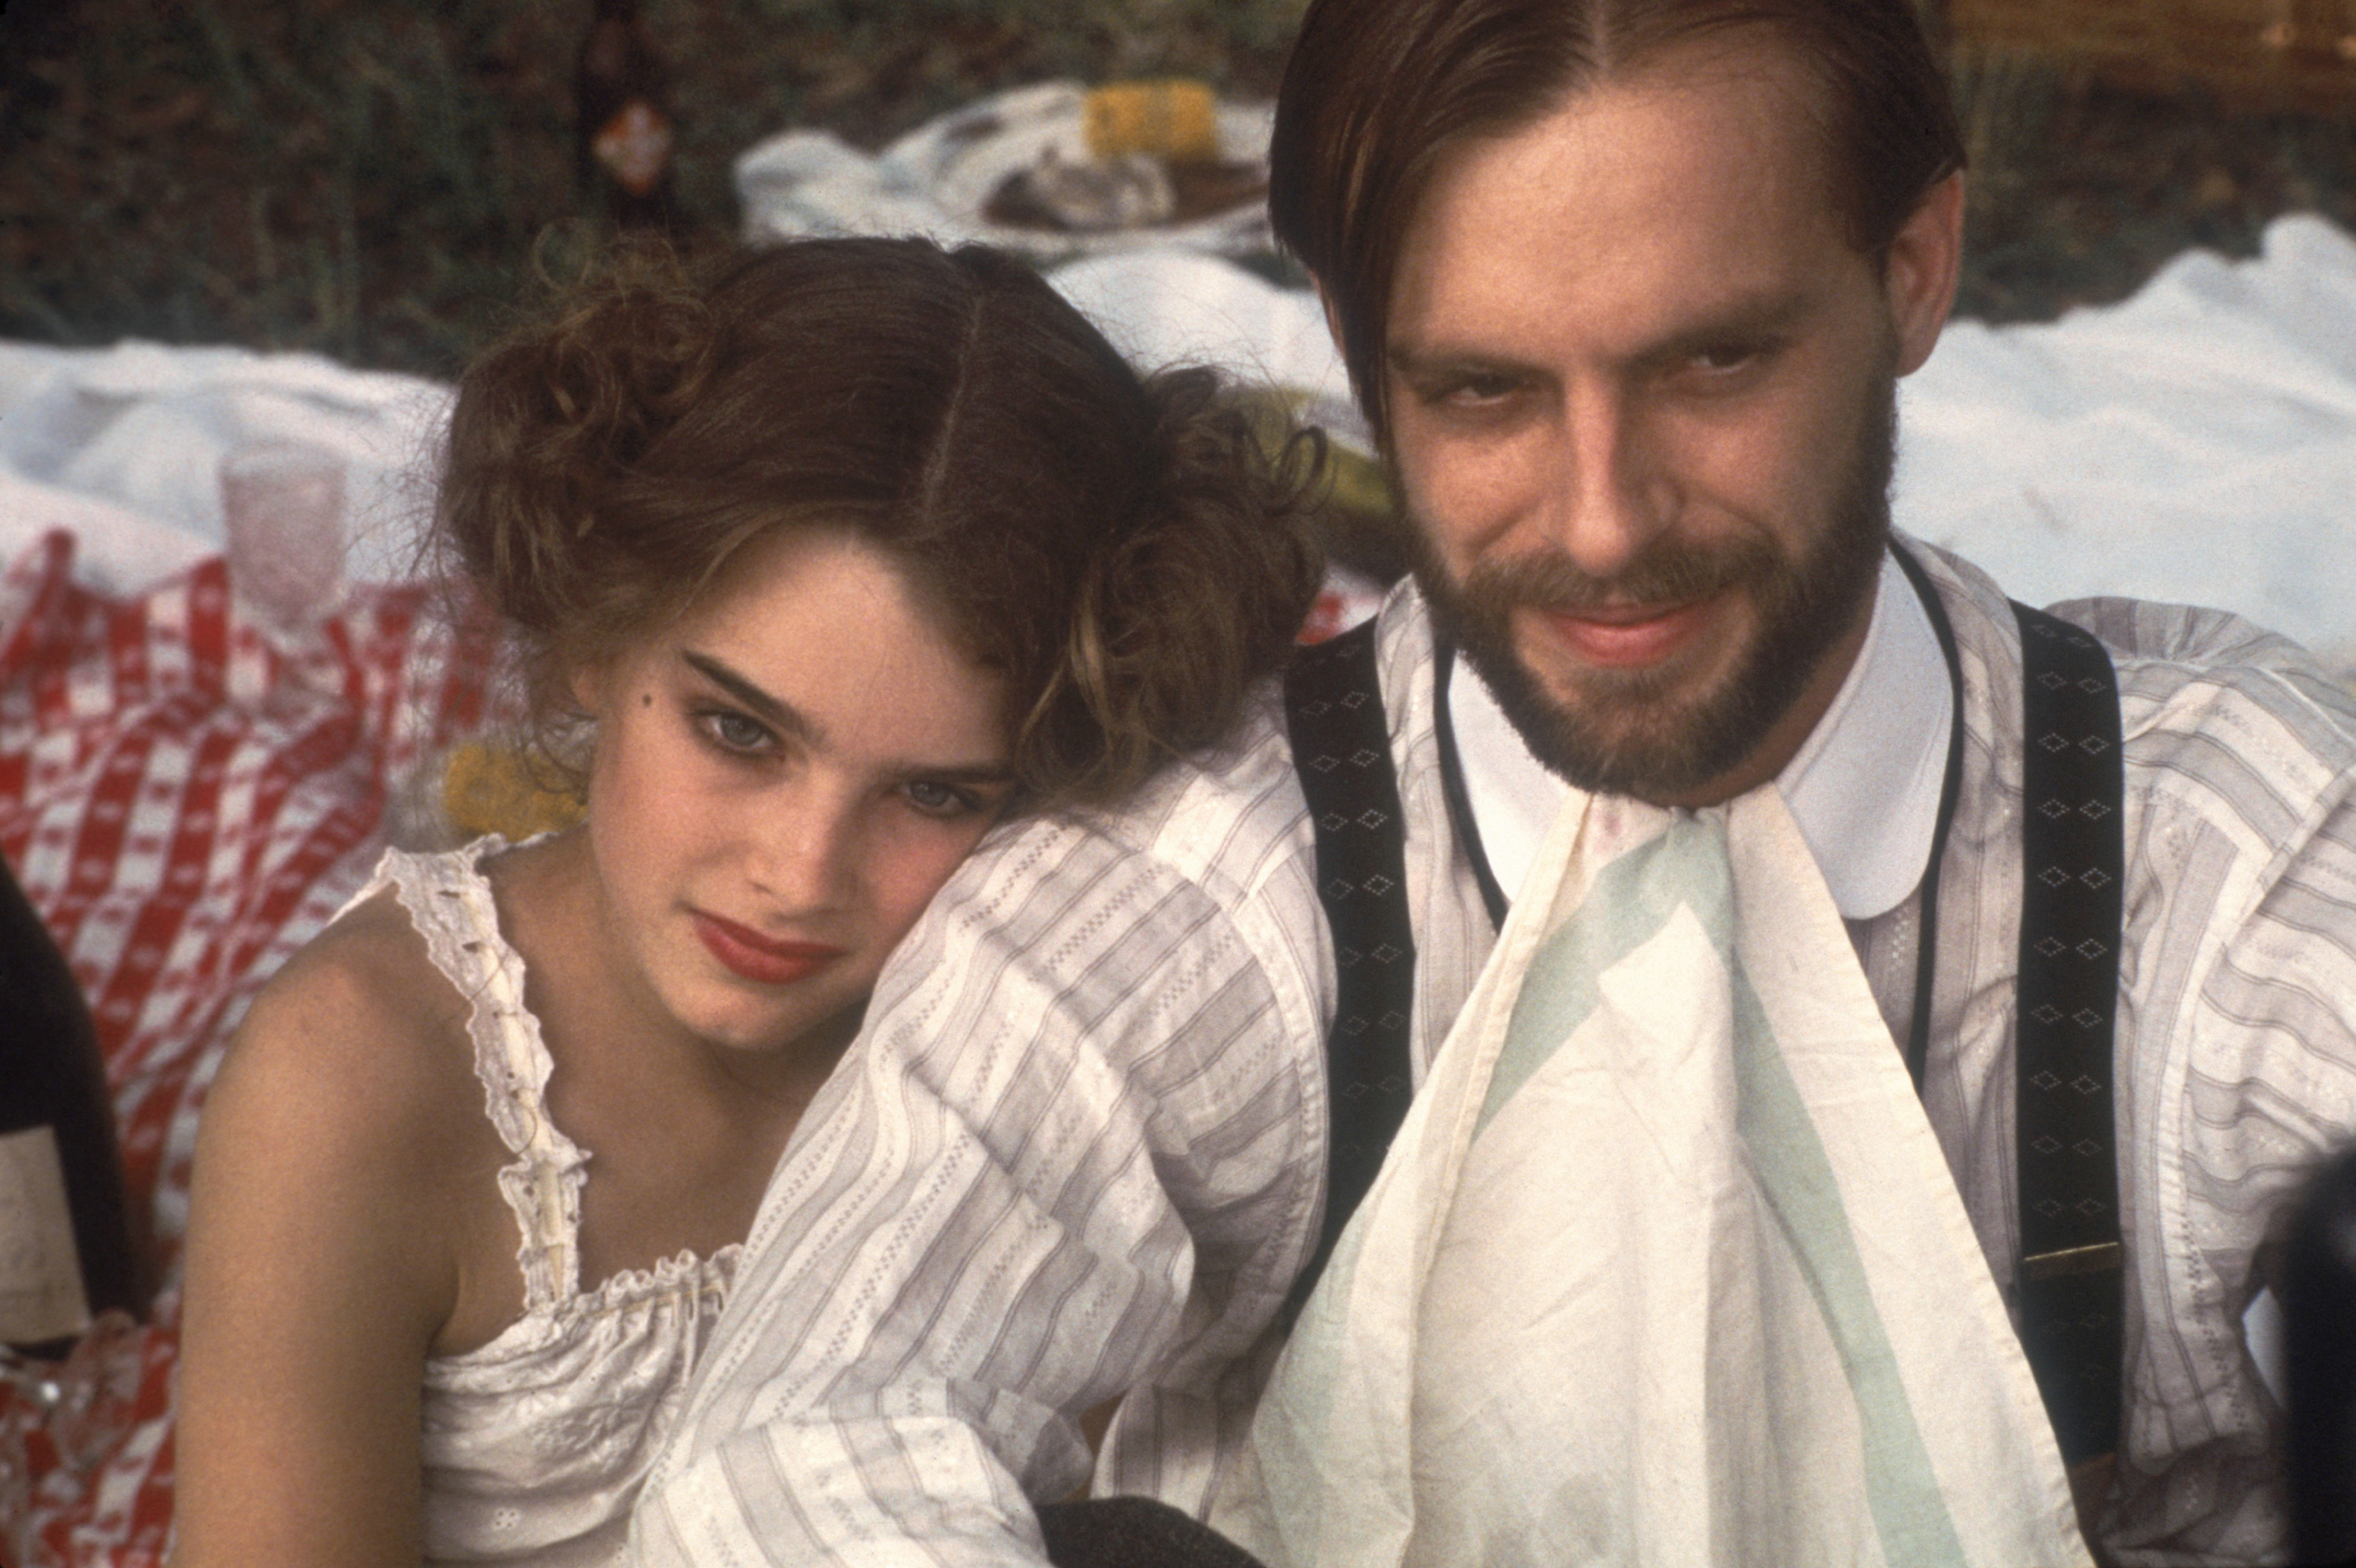 Brooke Shields and Keith Carradine in Pretty Baby (1978)